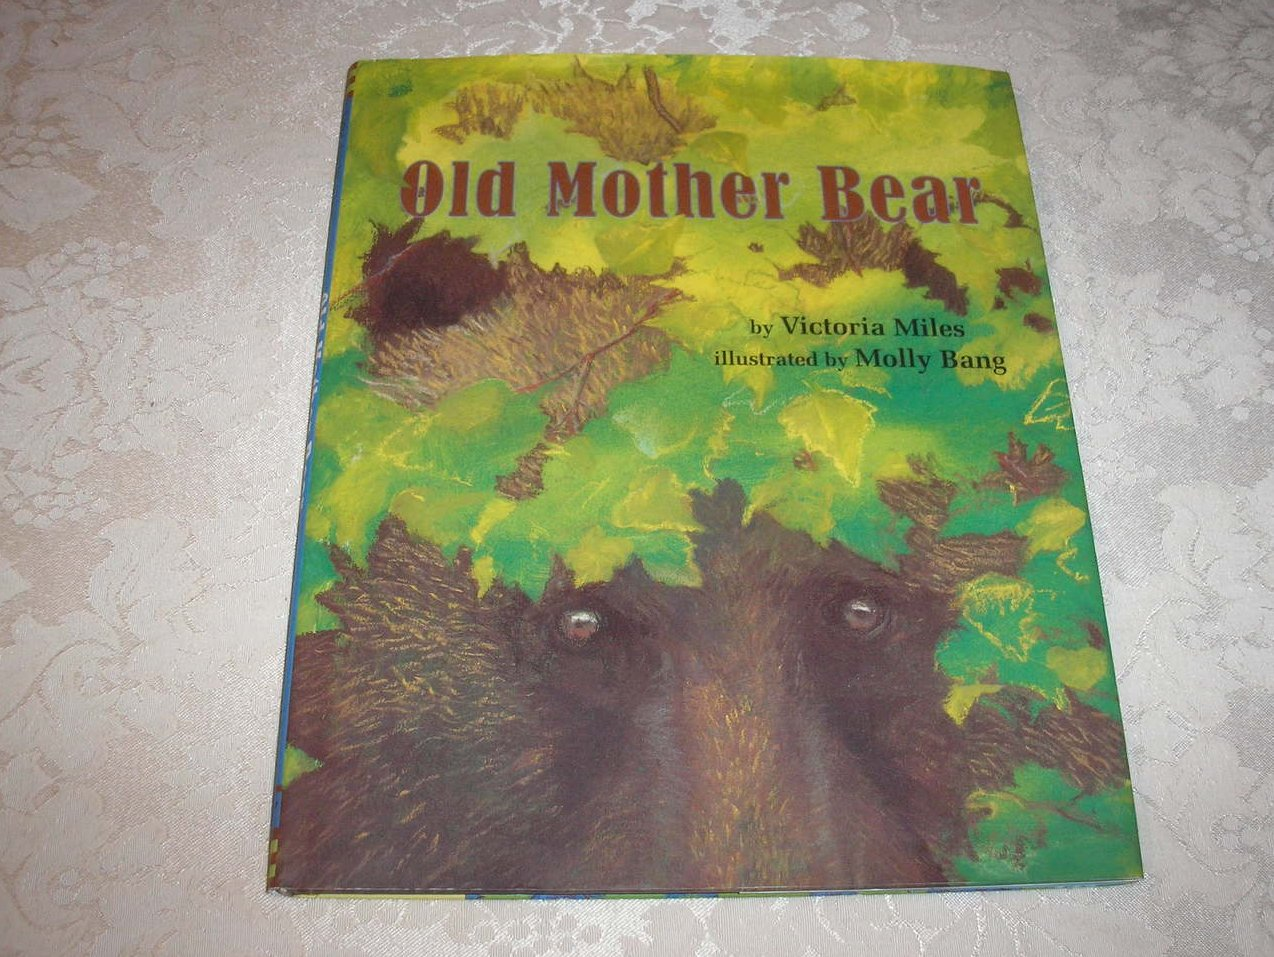 Old Mother Bear Victoria Miles very good hc with dj